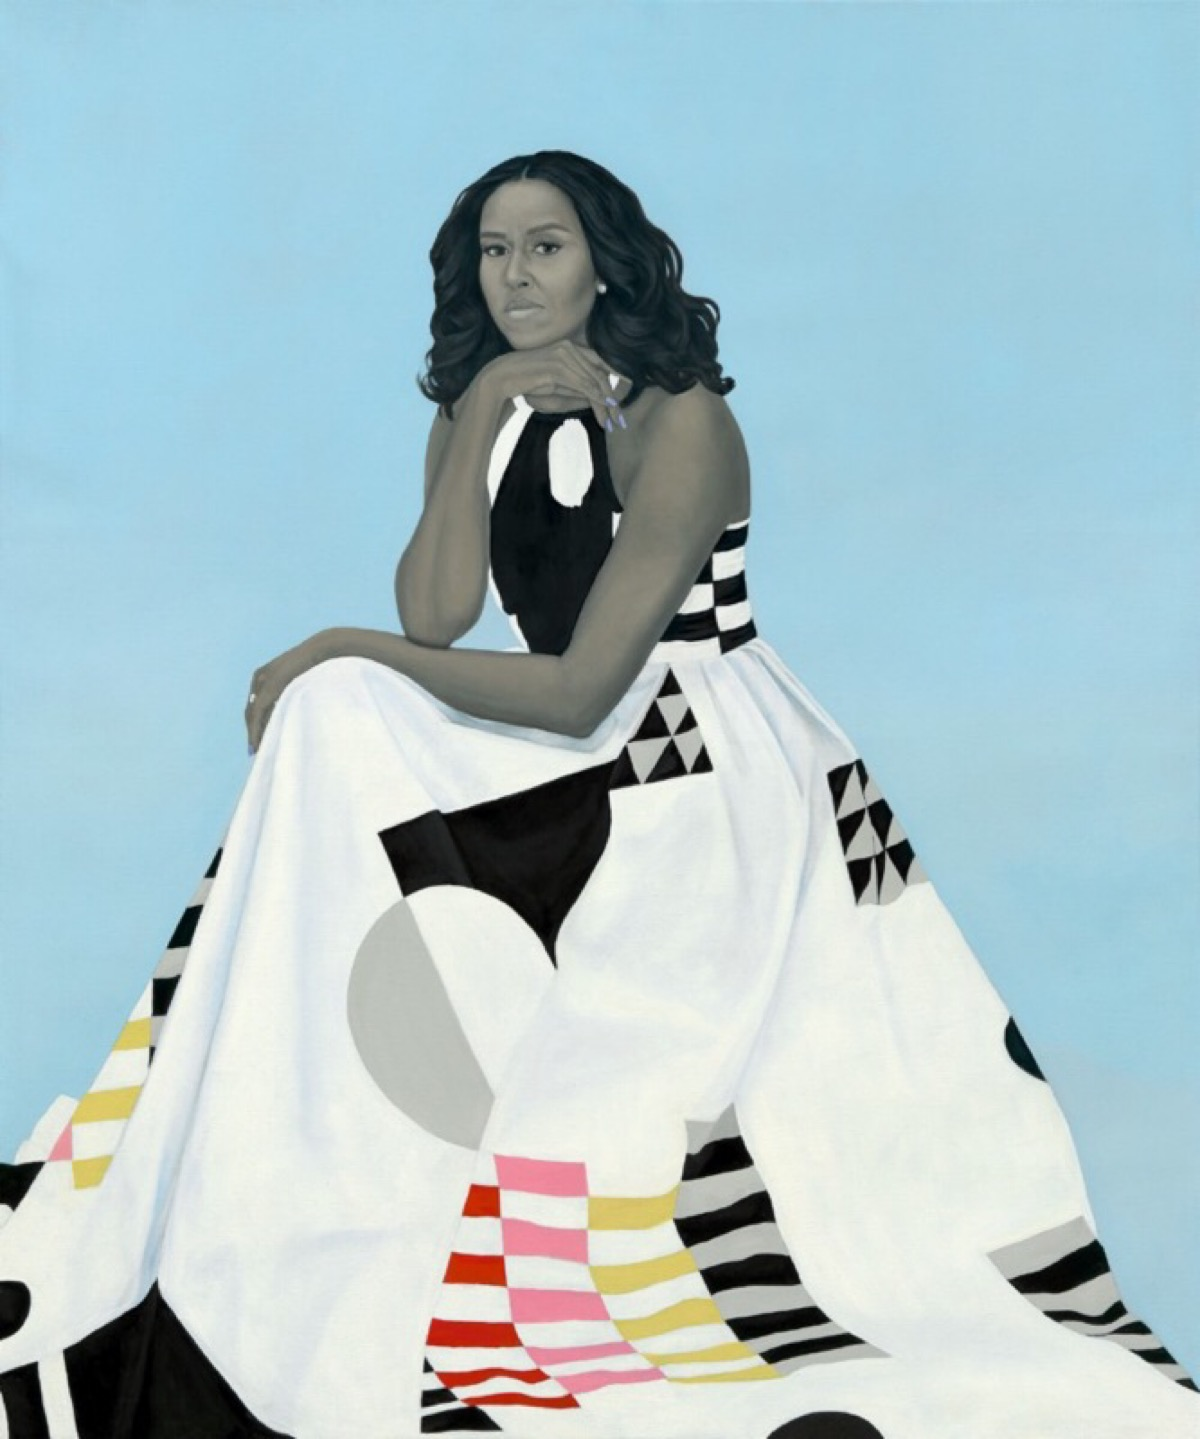 Portrait of Michelle Obama by Amy Sherald